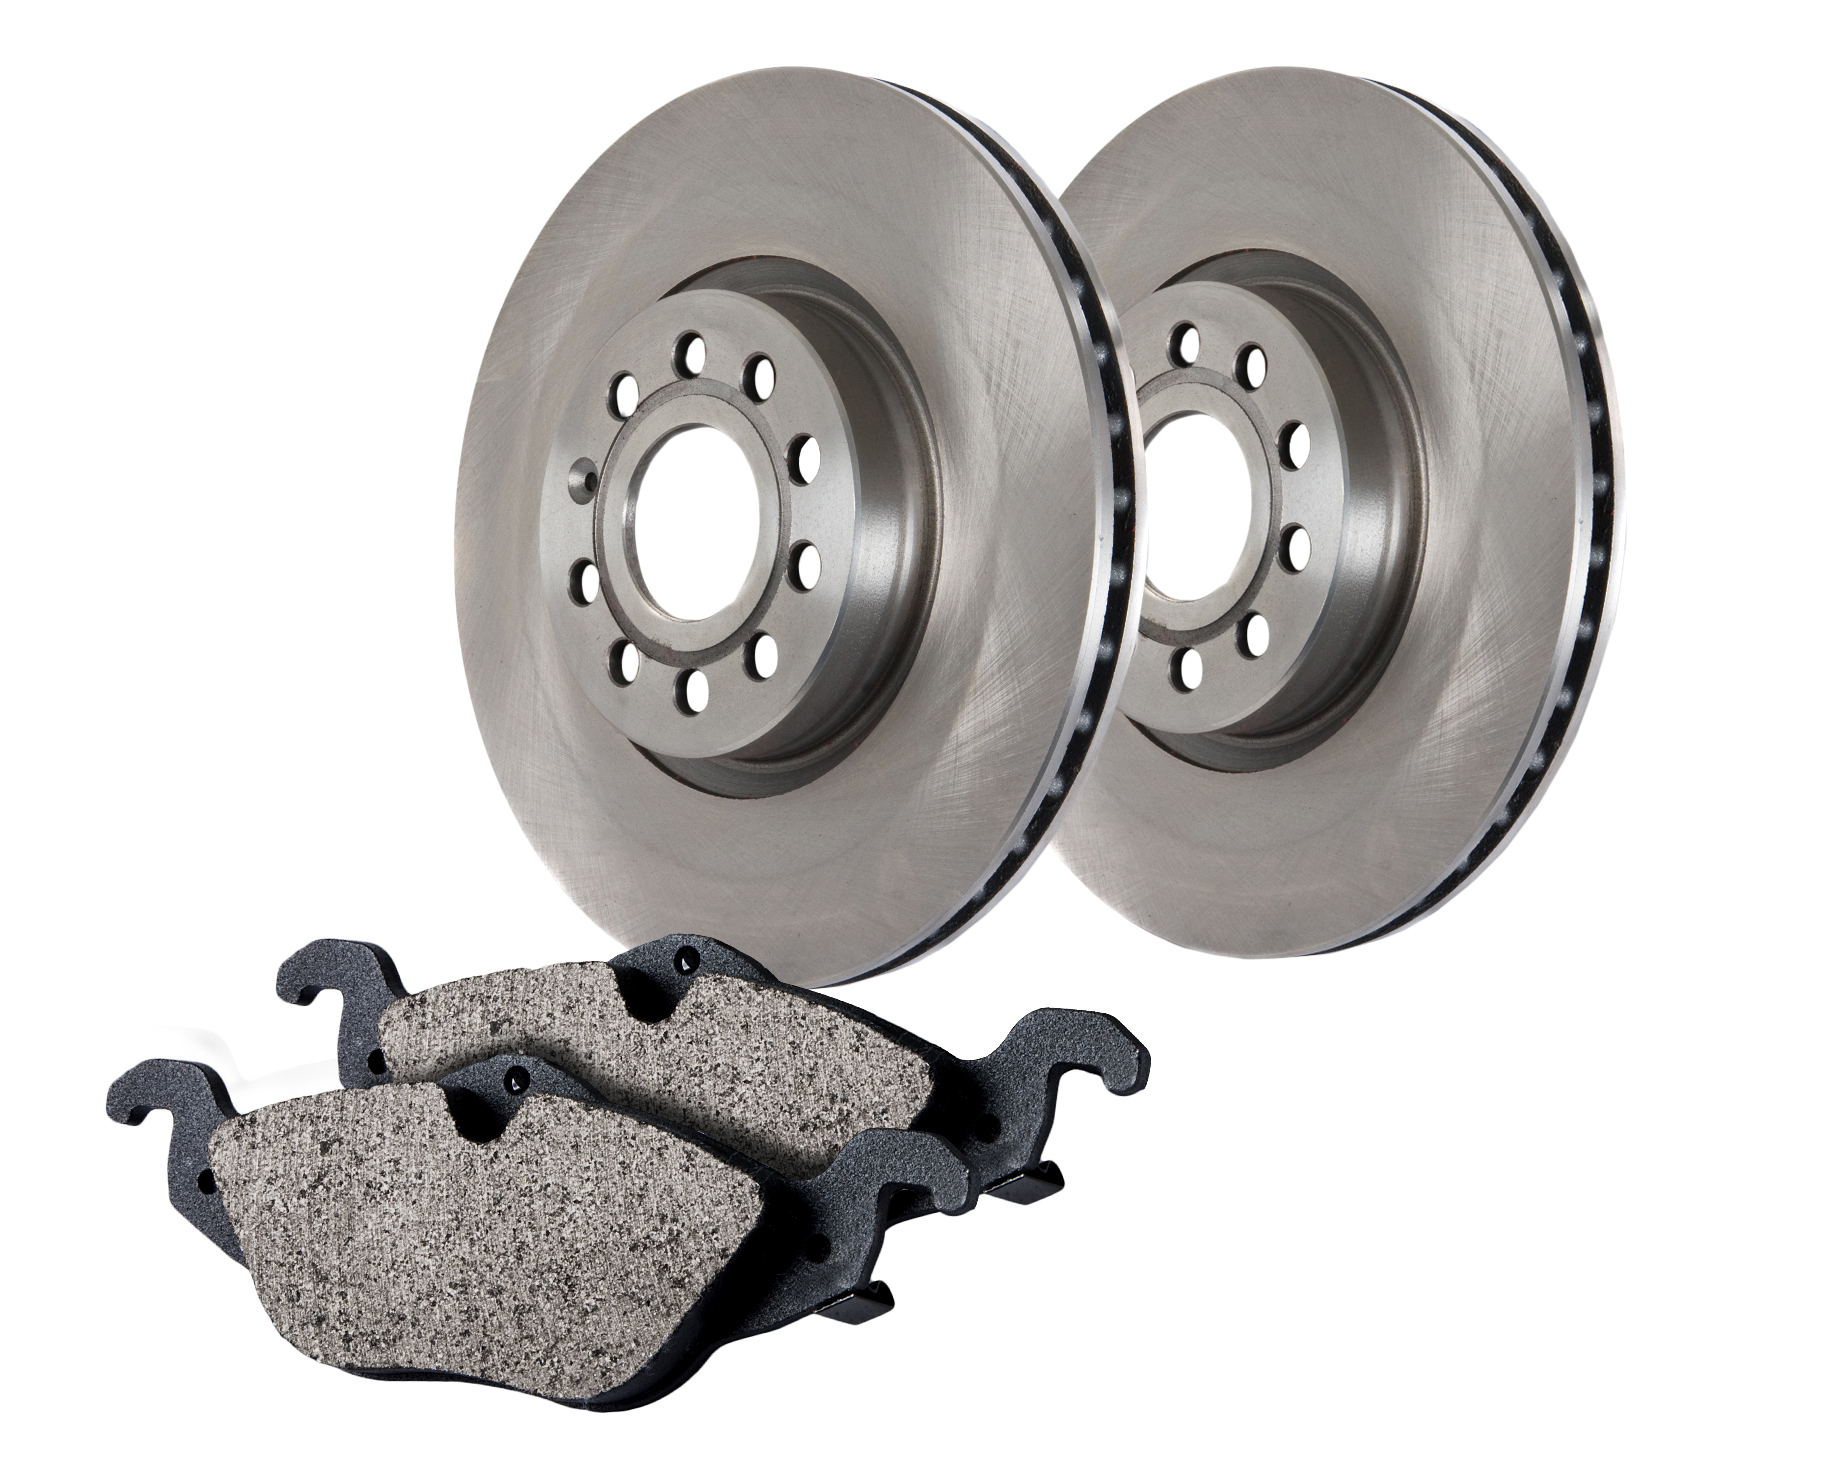 Centric Brake Parts 905.50004 Brake Rotor and Pad Kit, Premium, Semi-Metallic Pads, Iron, Natural, Hyundai Sonata 2003-05 / Kia Optima 2002-06, Kit